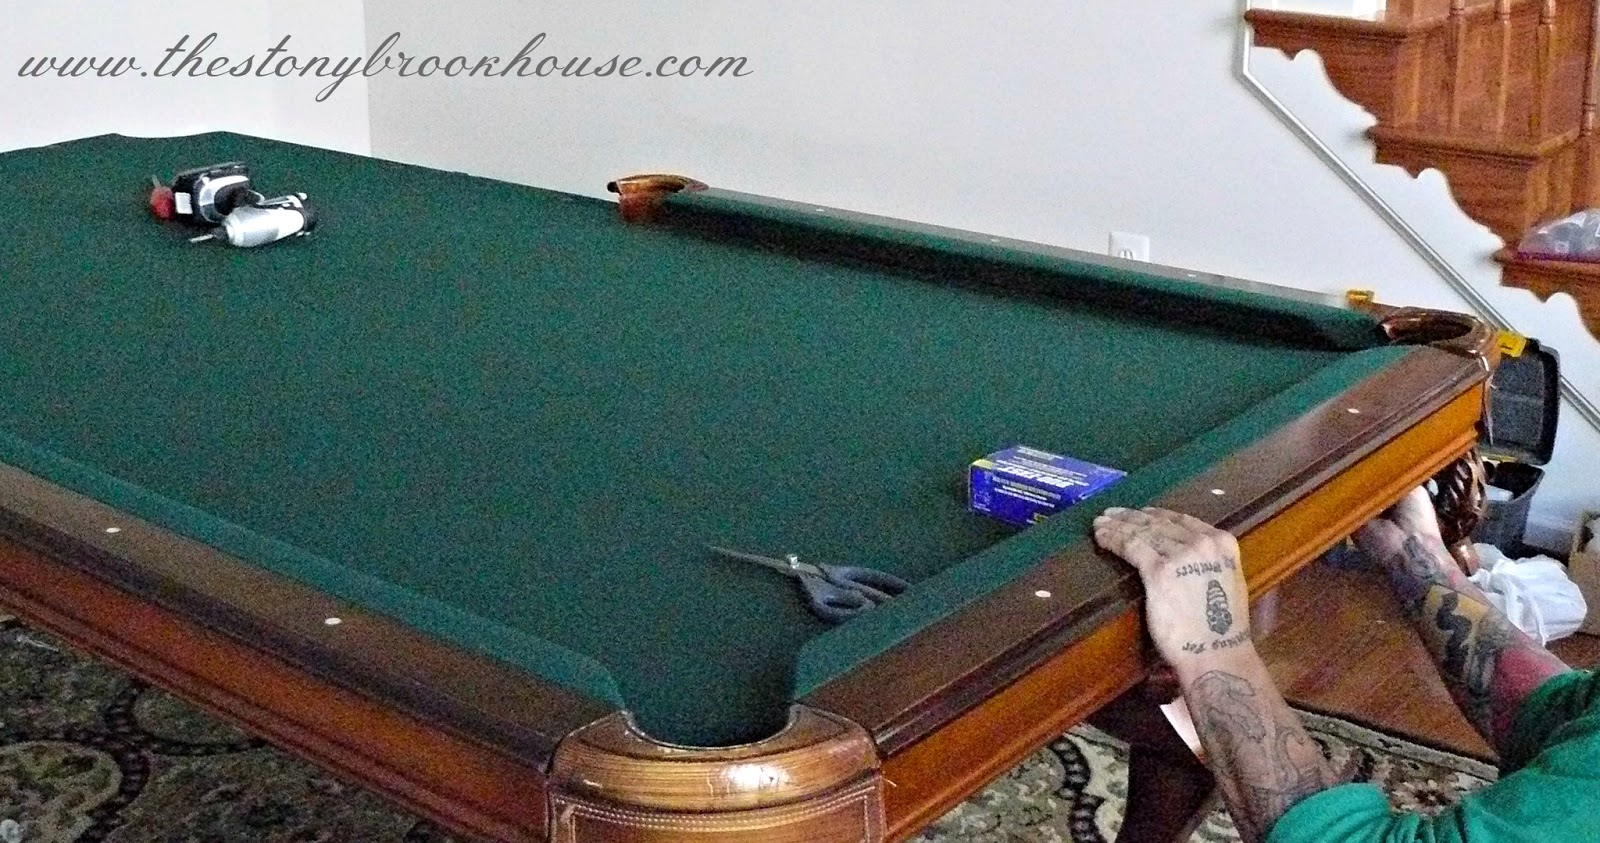 Build your own pool table plans - Diy Pool Table With Diy Pool Table